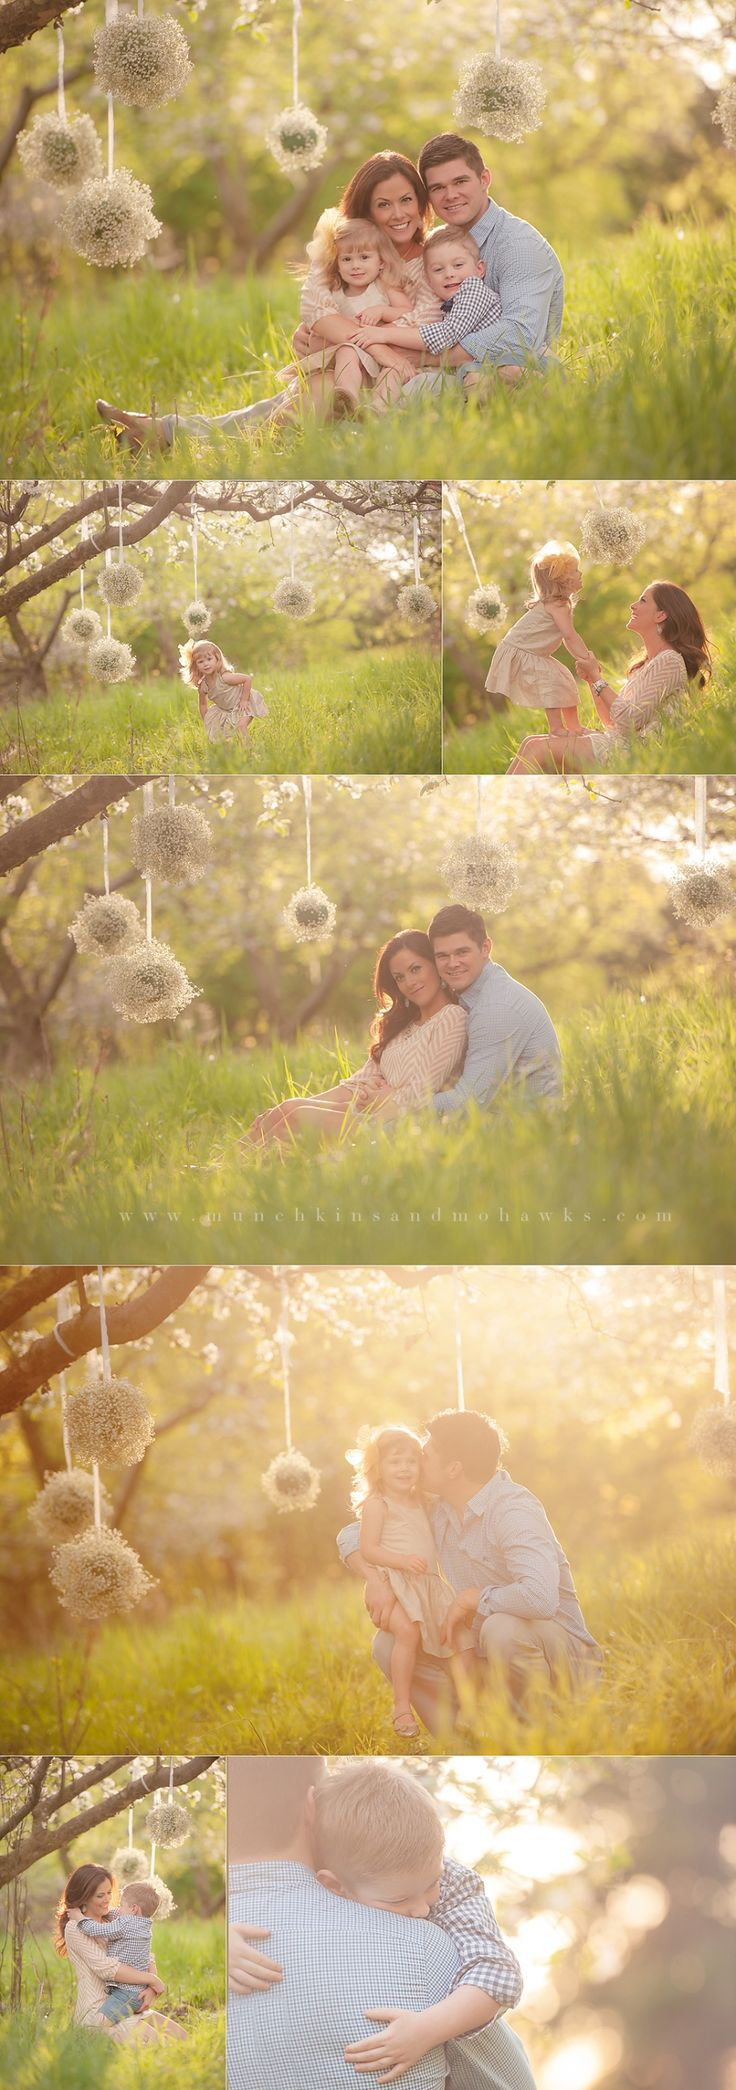 family orchard session www.munchkinsandm… love love loveeeee